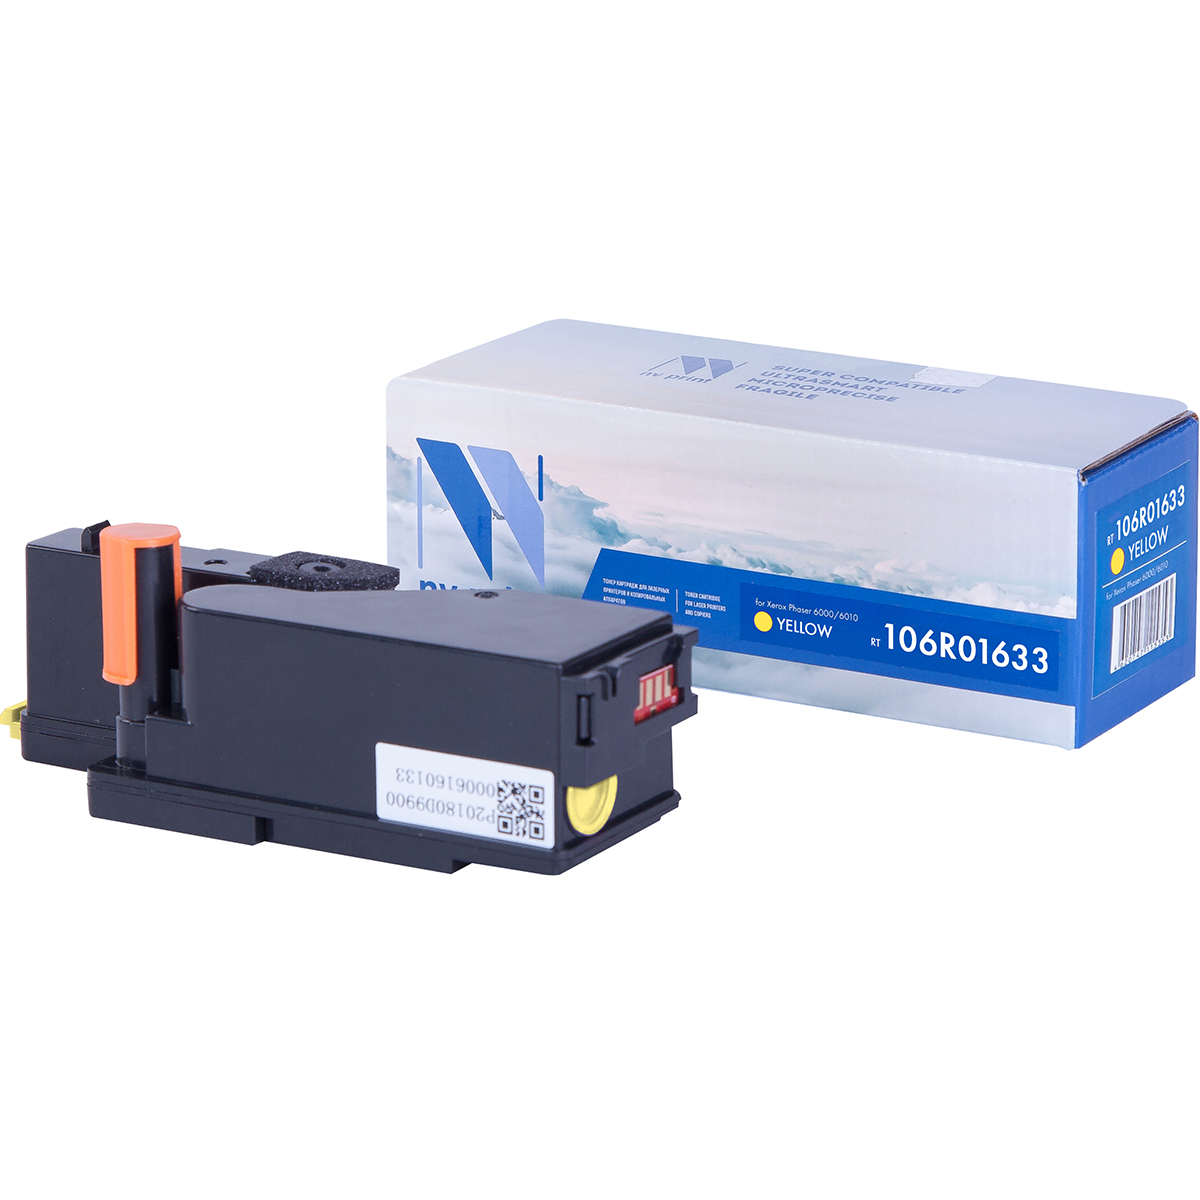 Картридж NV Print 106R01633 Yellow для Xerox Phaser 6000/6010 (1000k) картридж xerox 106r01075 yellow для phaser 6300 6350 4000стр